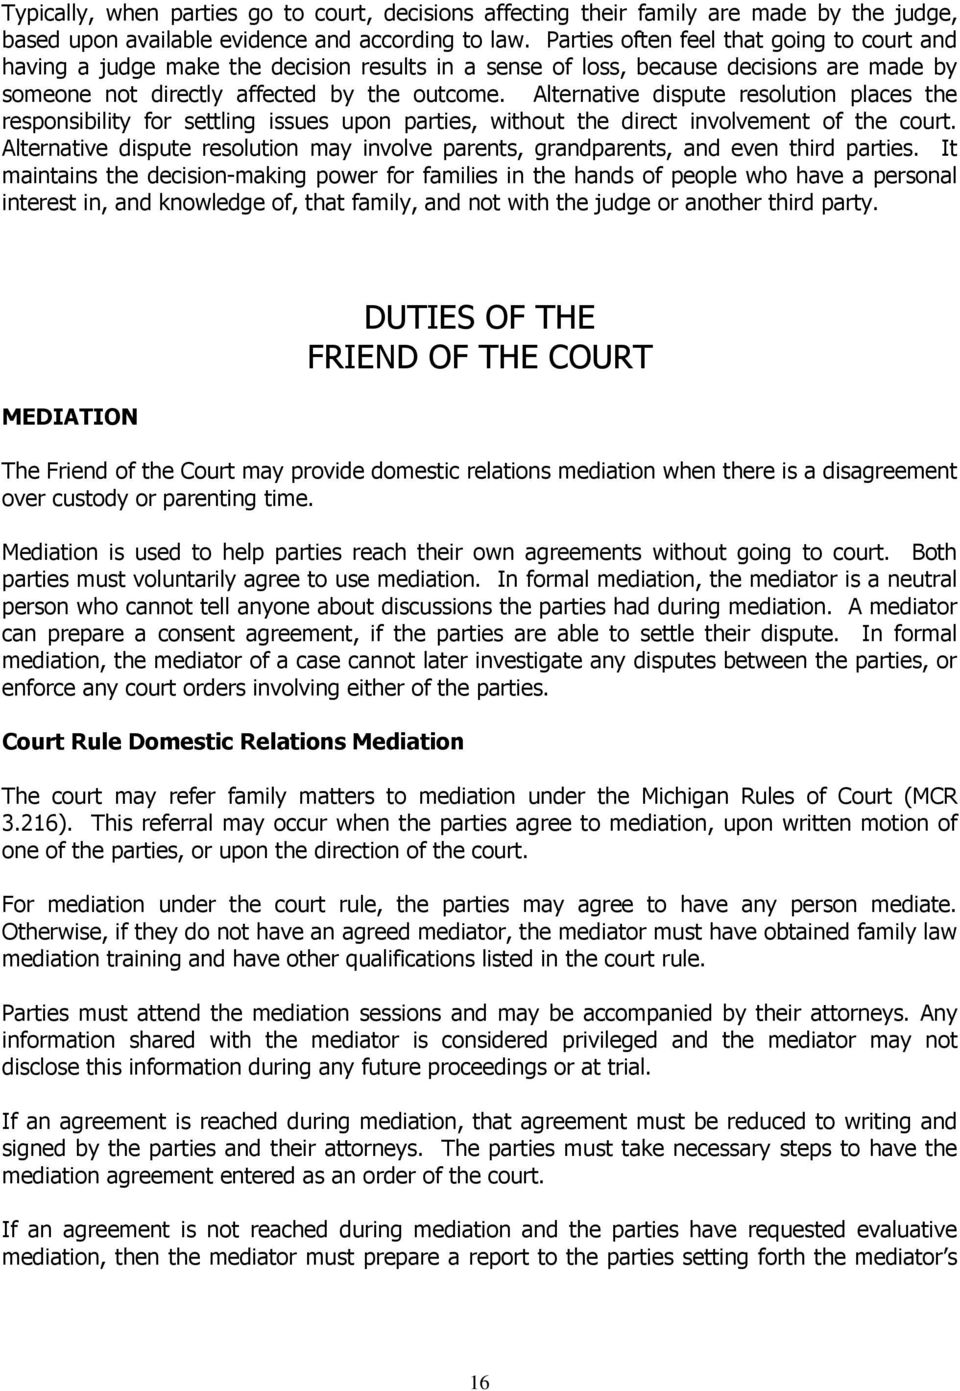 Alternative dispute resolution places the responsibility for settling issues upon parties, without the direct involvement of the court.